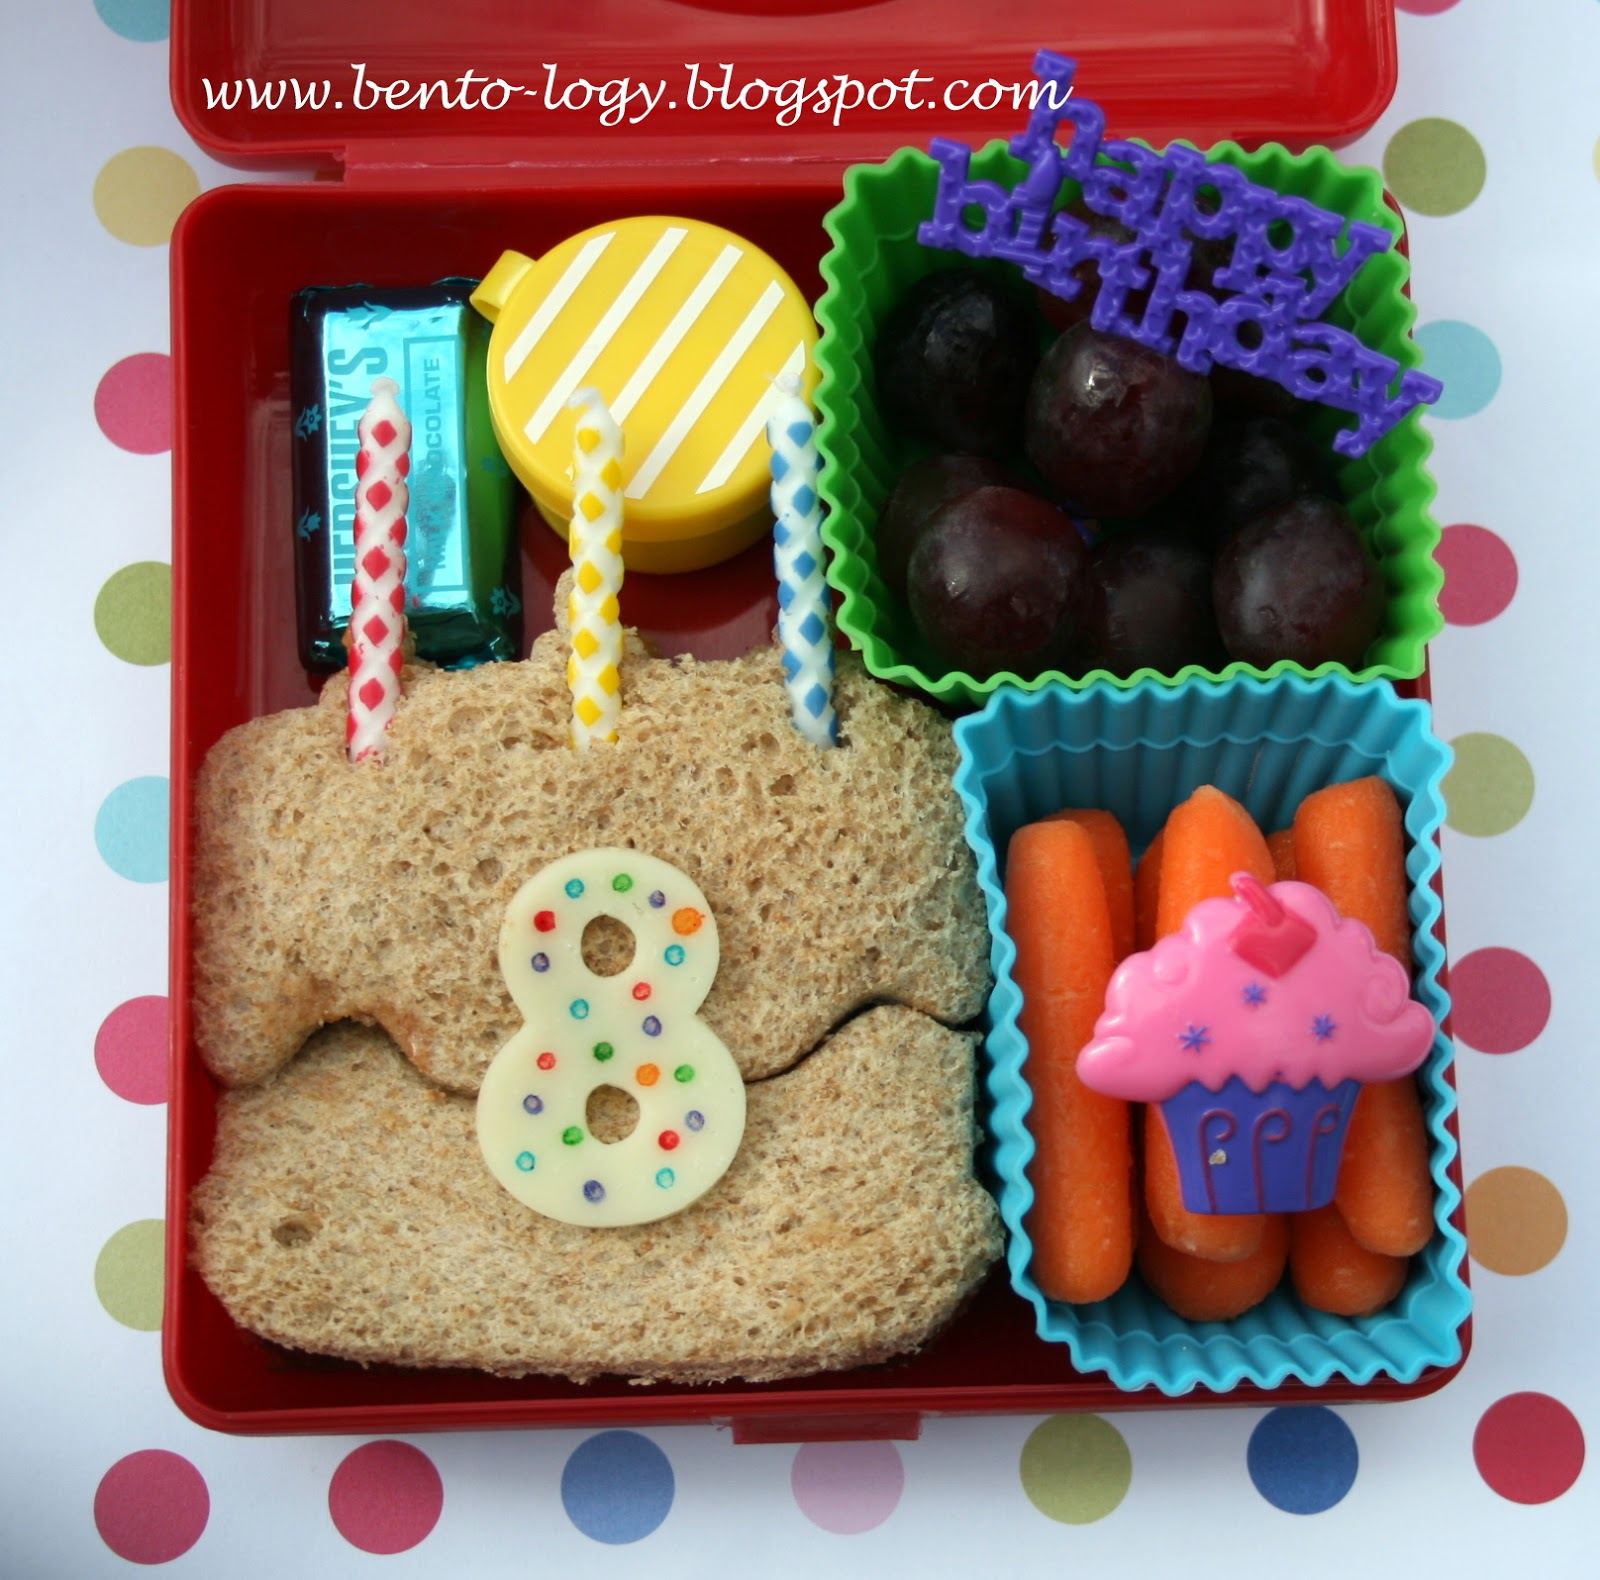 Bento-logy: It's A Birthday Kind Of Lunch